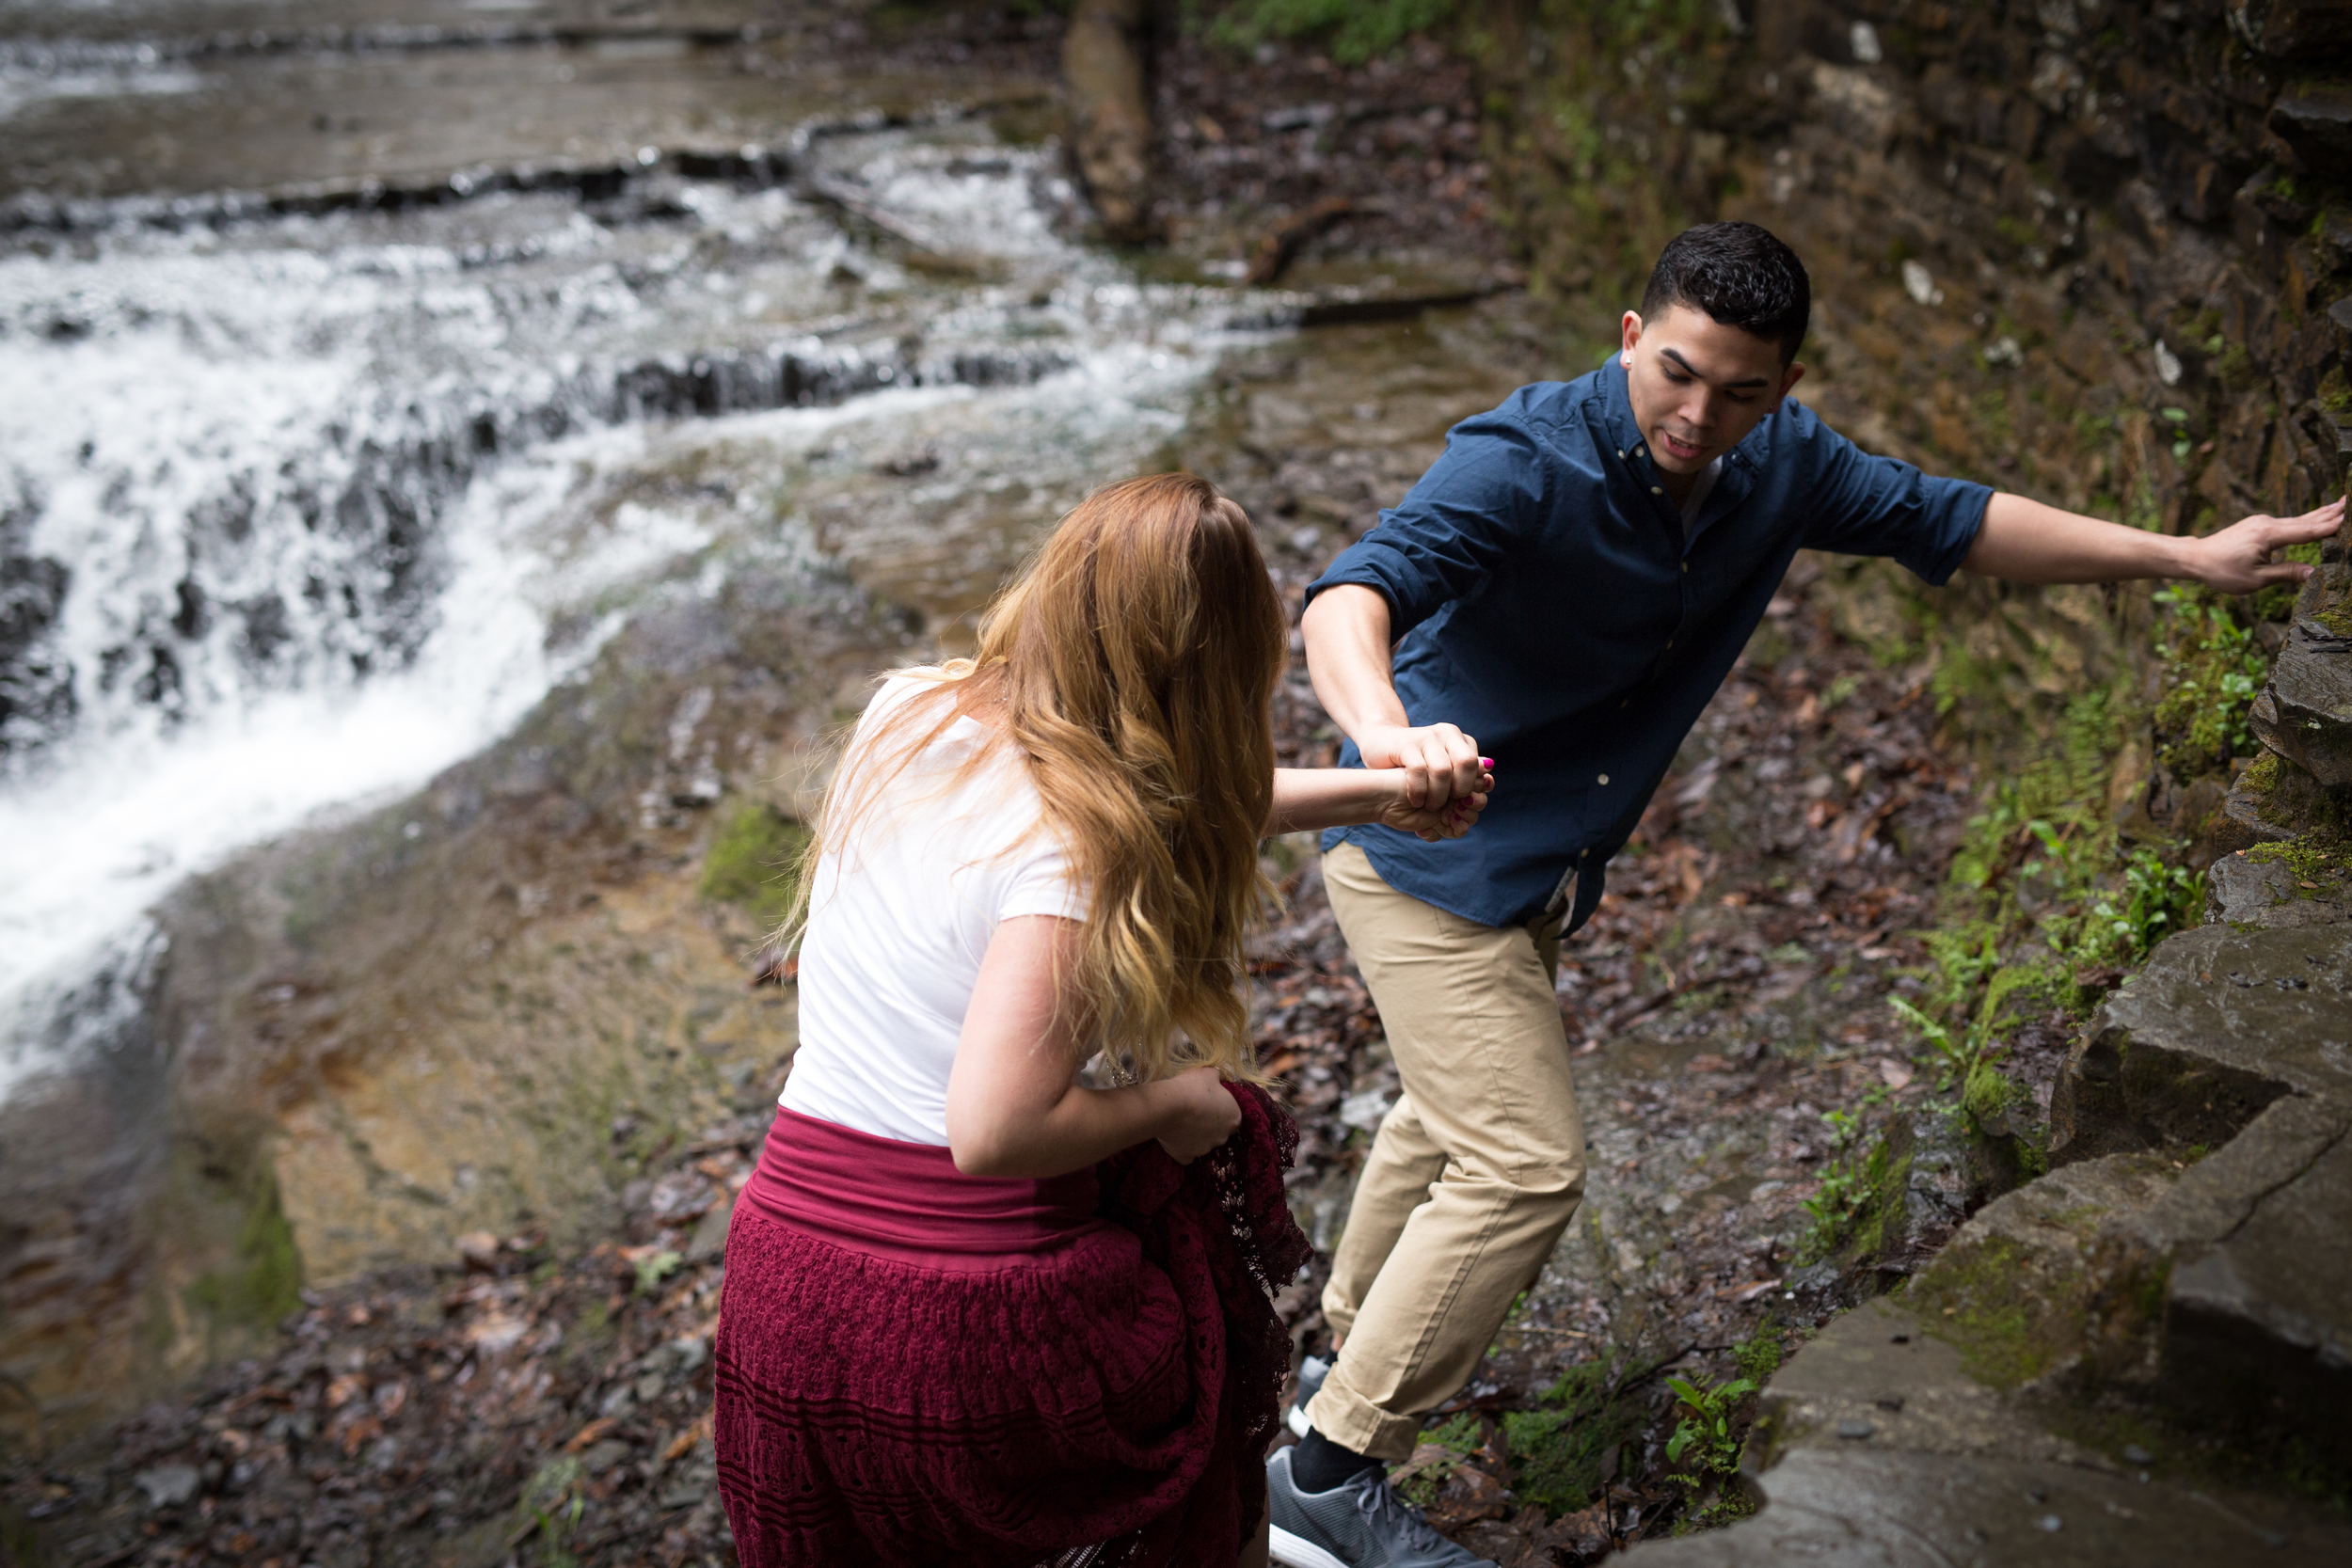 A_J_Engagement_Session_Waterfall_Nick_Natasha_Photography-27.jpg